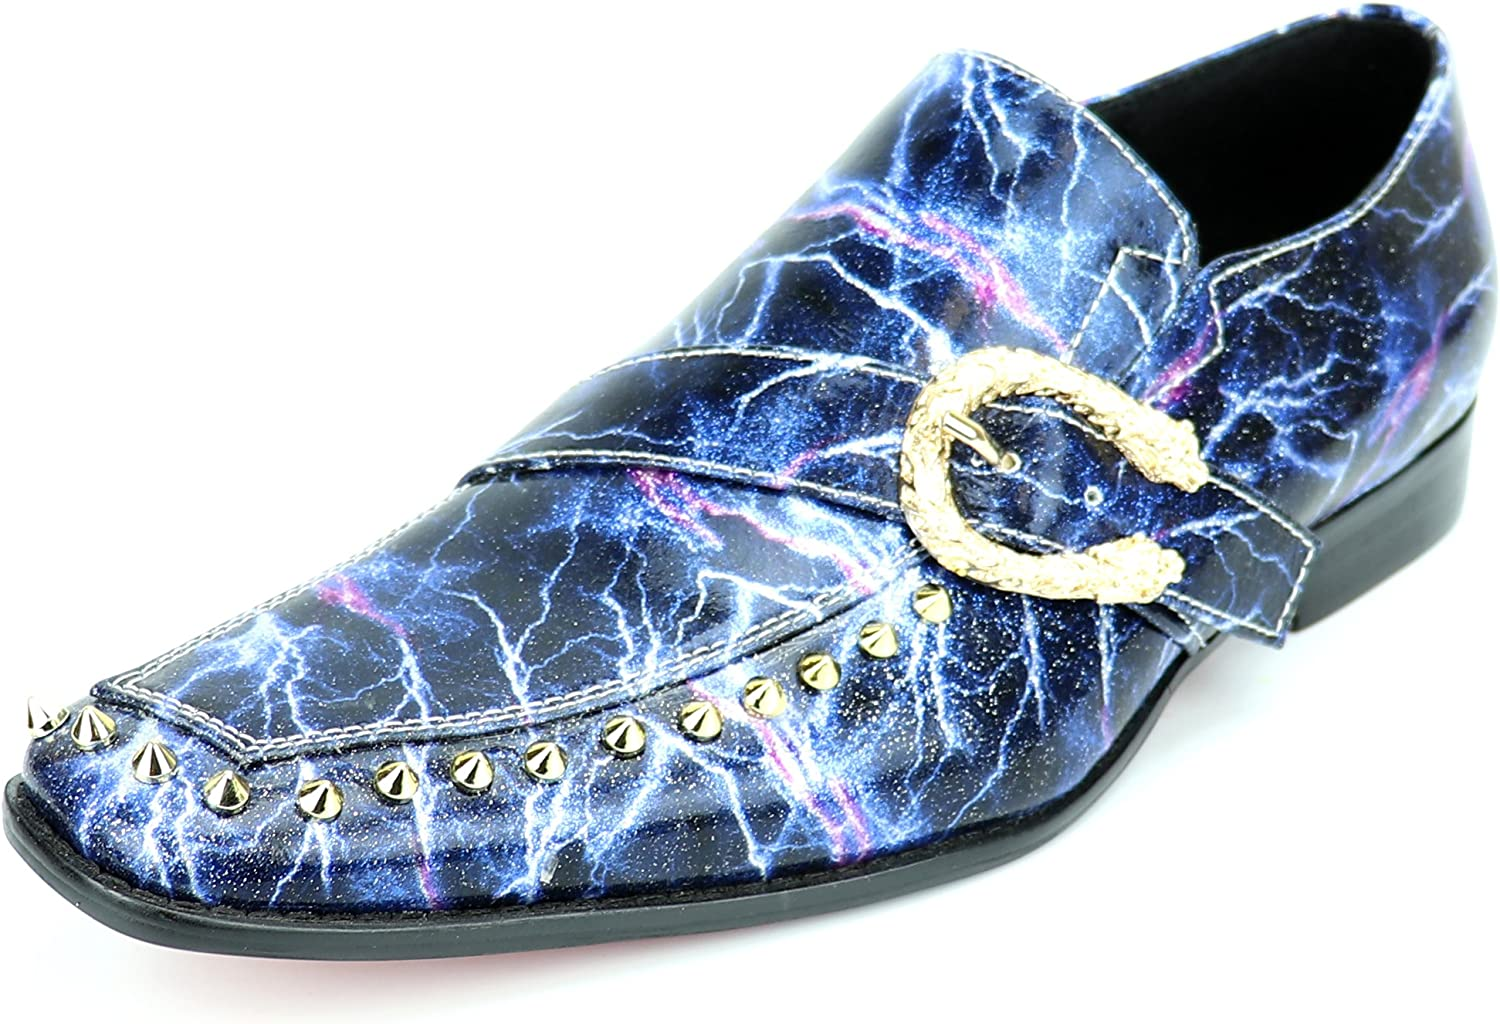 Fiesso by Aurelio Garcia FI-7248 Blue Patent Side Buckle and Studs Slip on Loafer European Shoe Designs